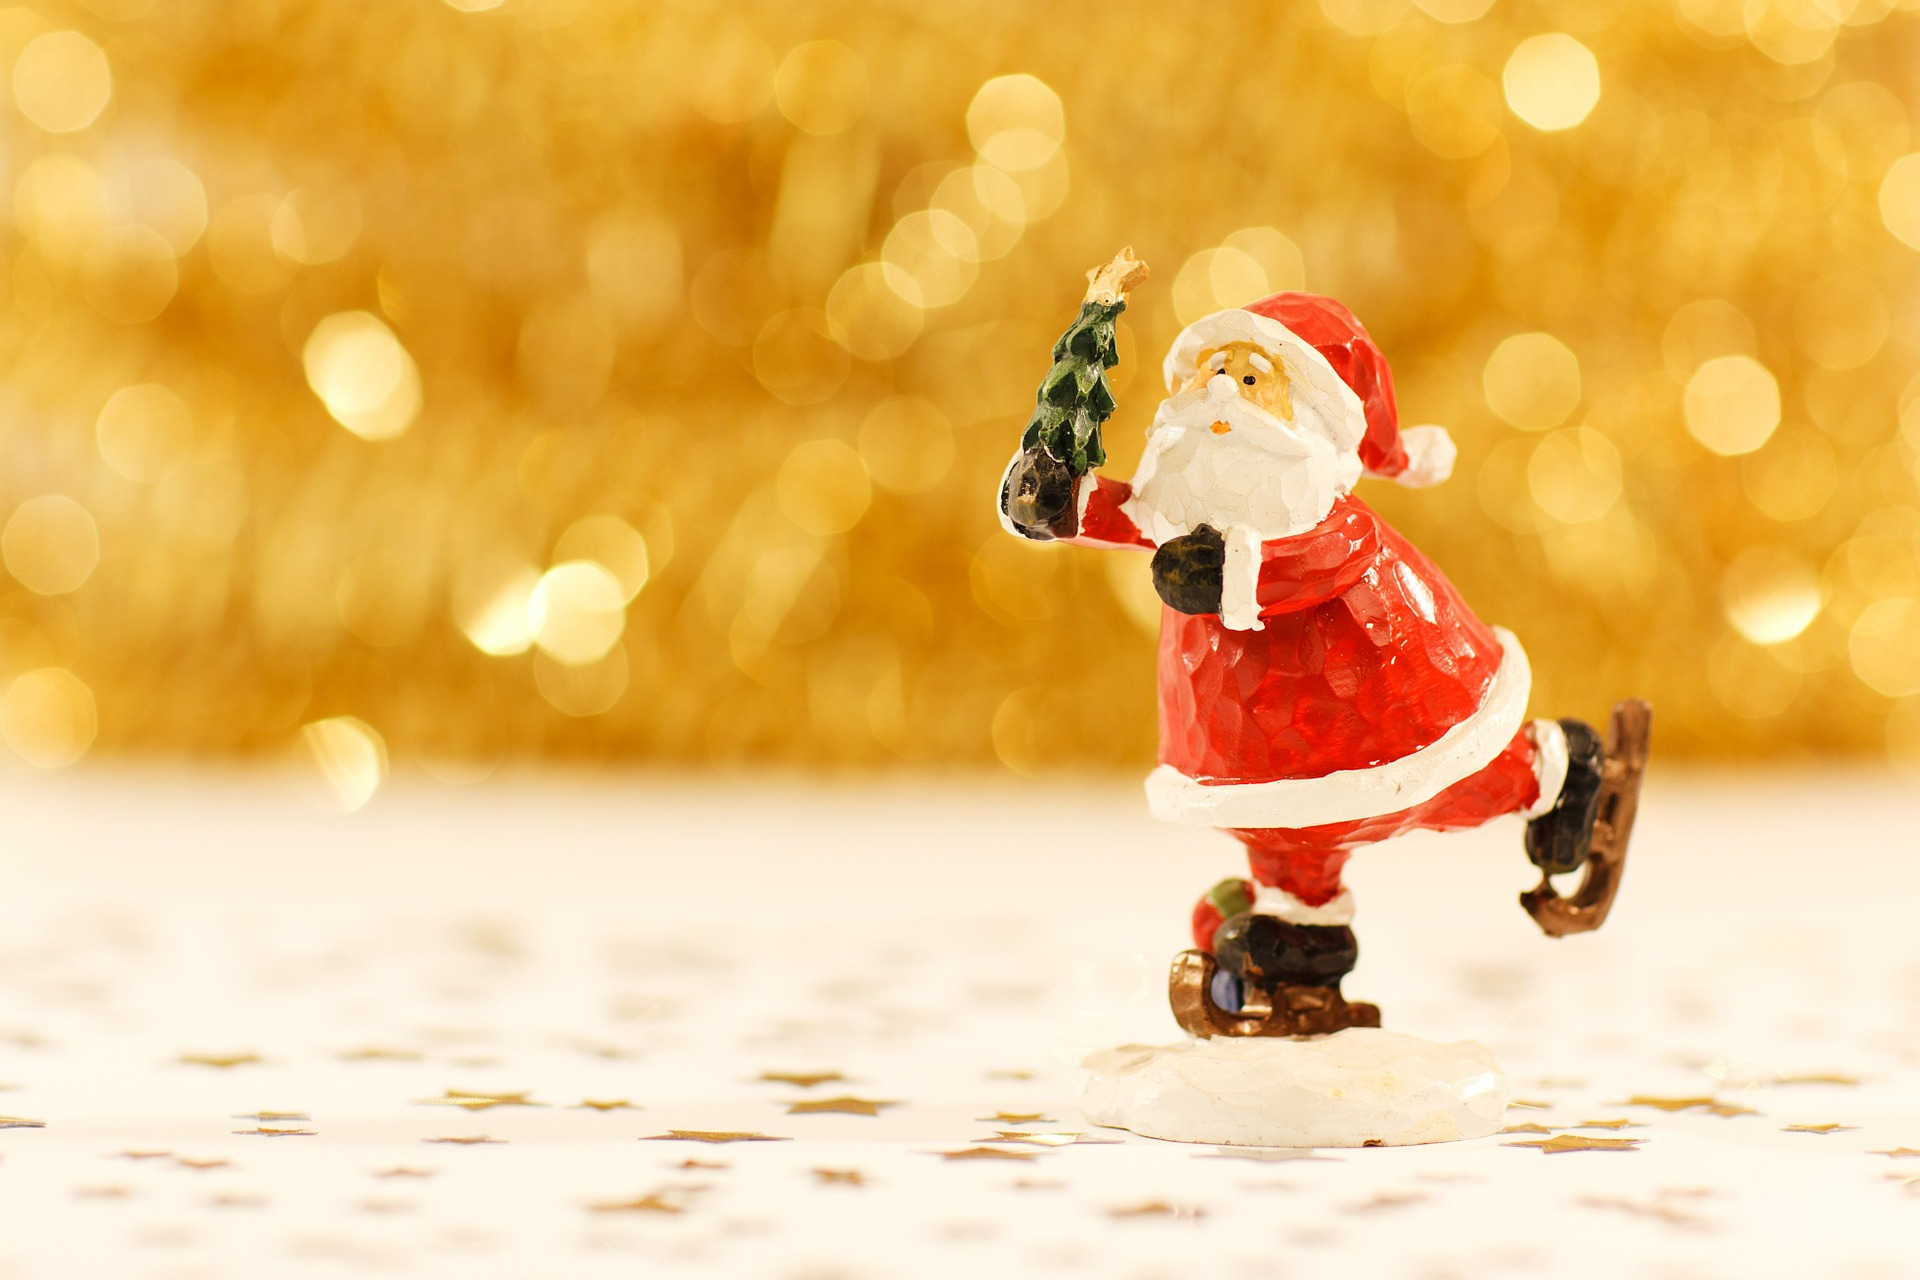 Stock Market is closed on Christmas, 1/2 day Christmas Eve